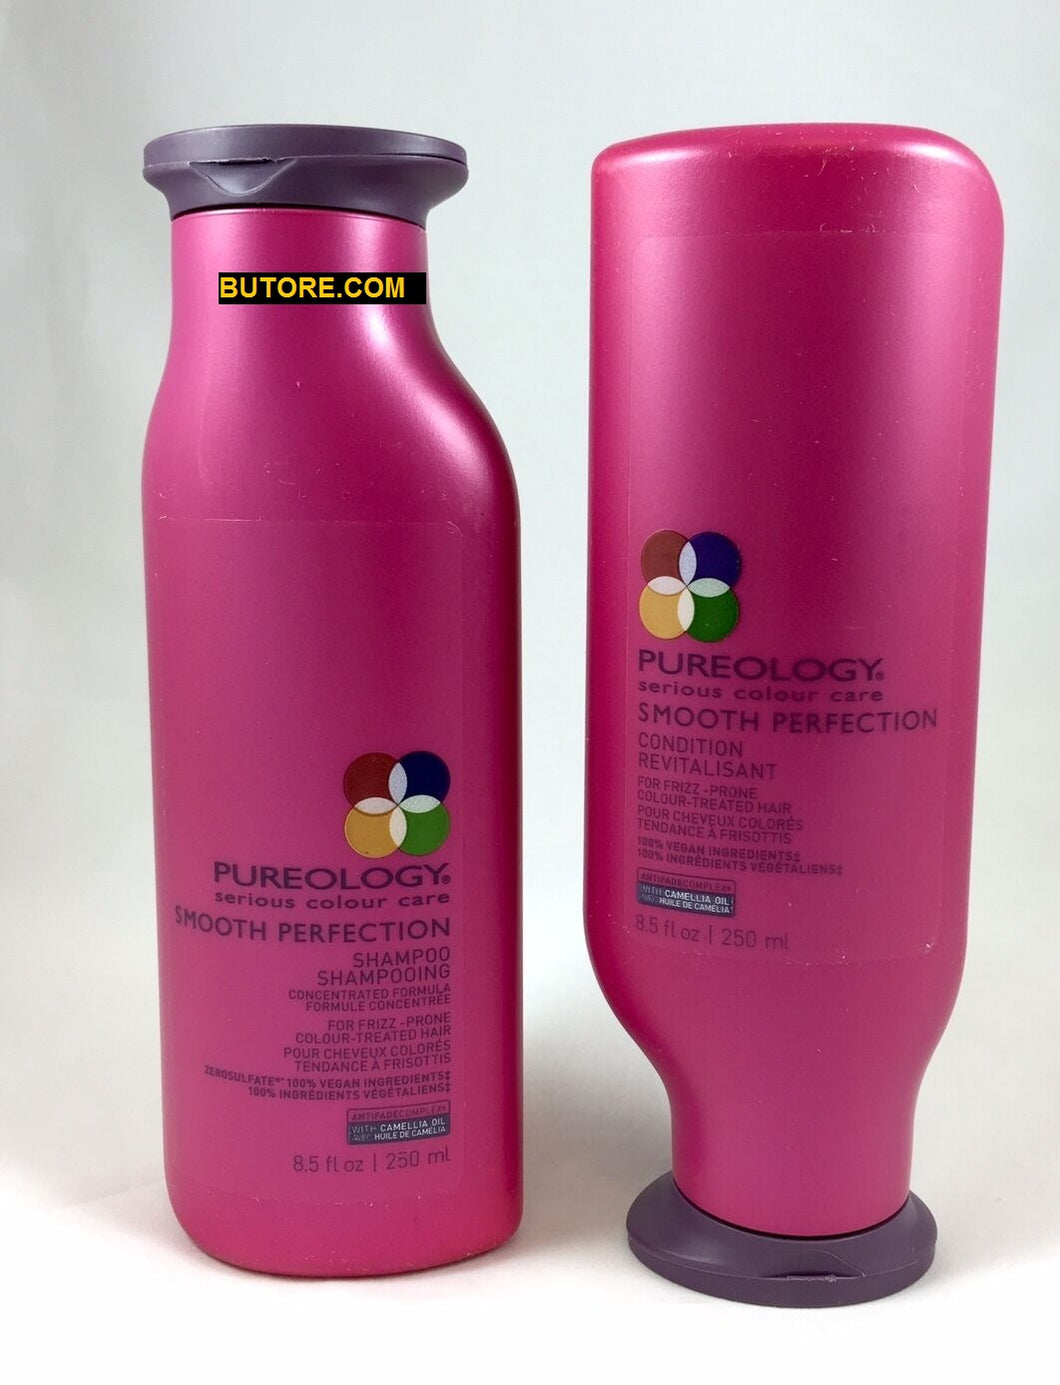 Pureology Smooth Perfection Shampoo & Smooth Perfection Conditioner 8.5 oz